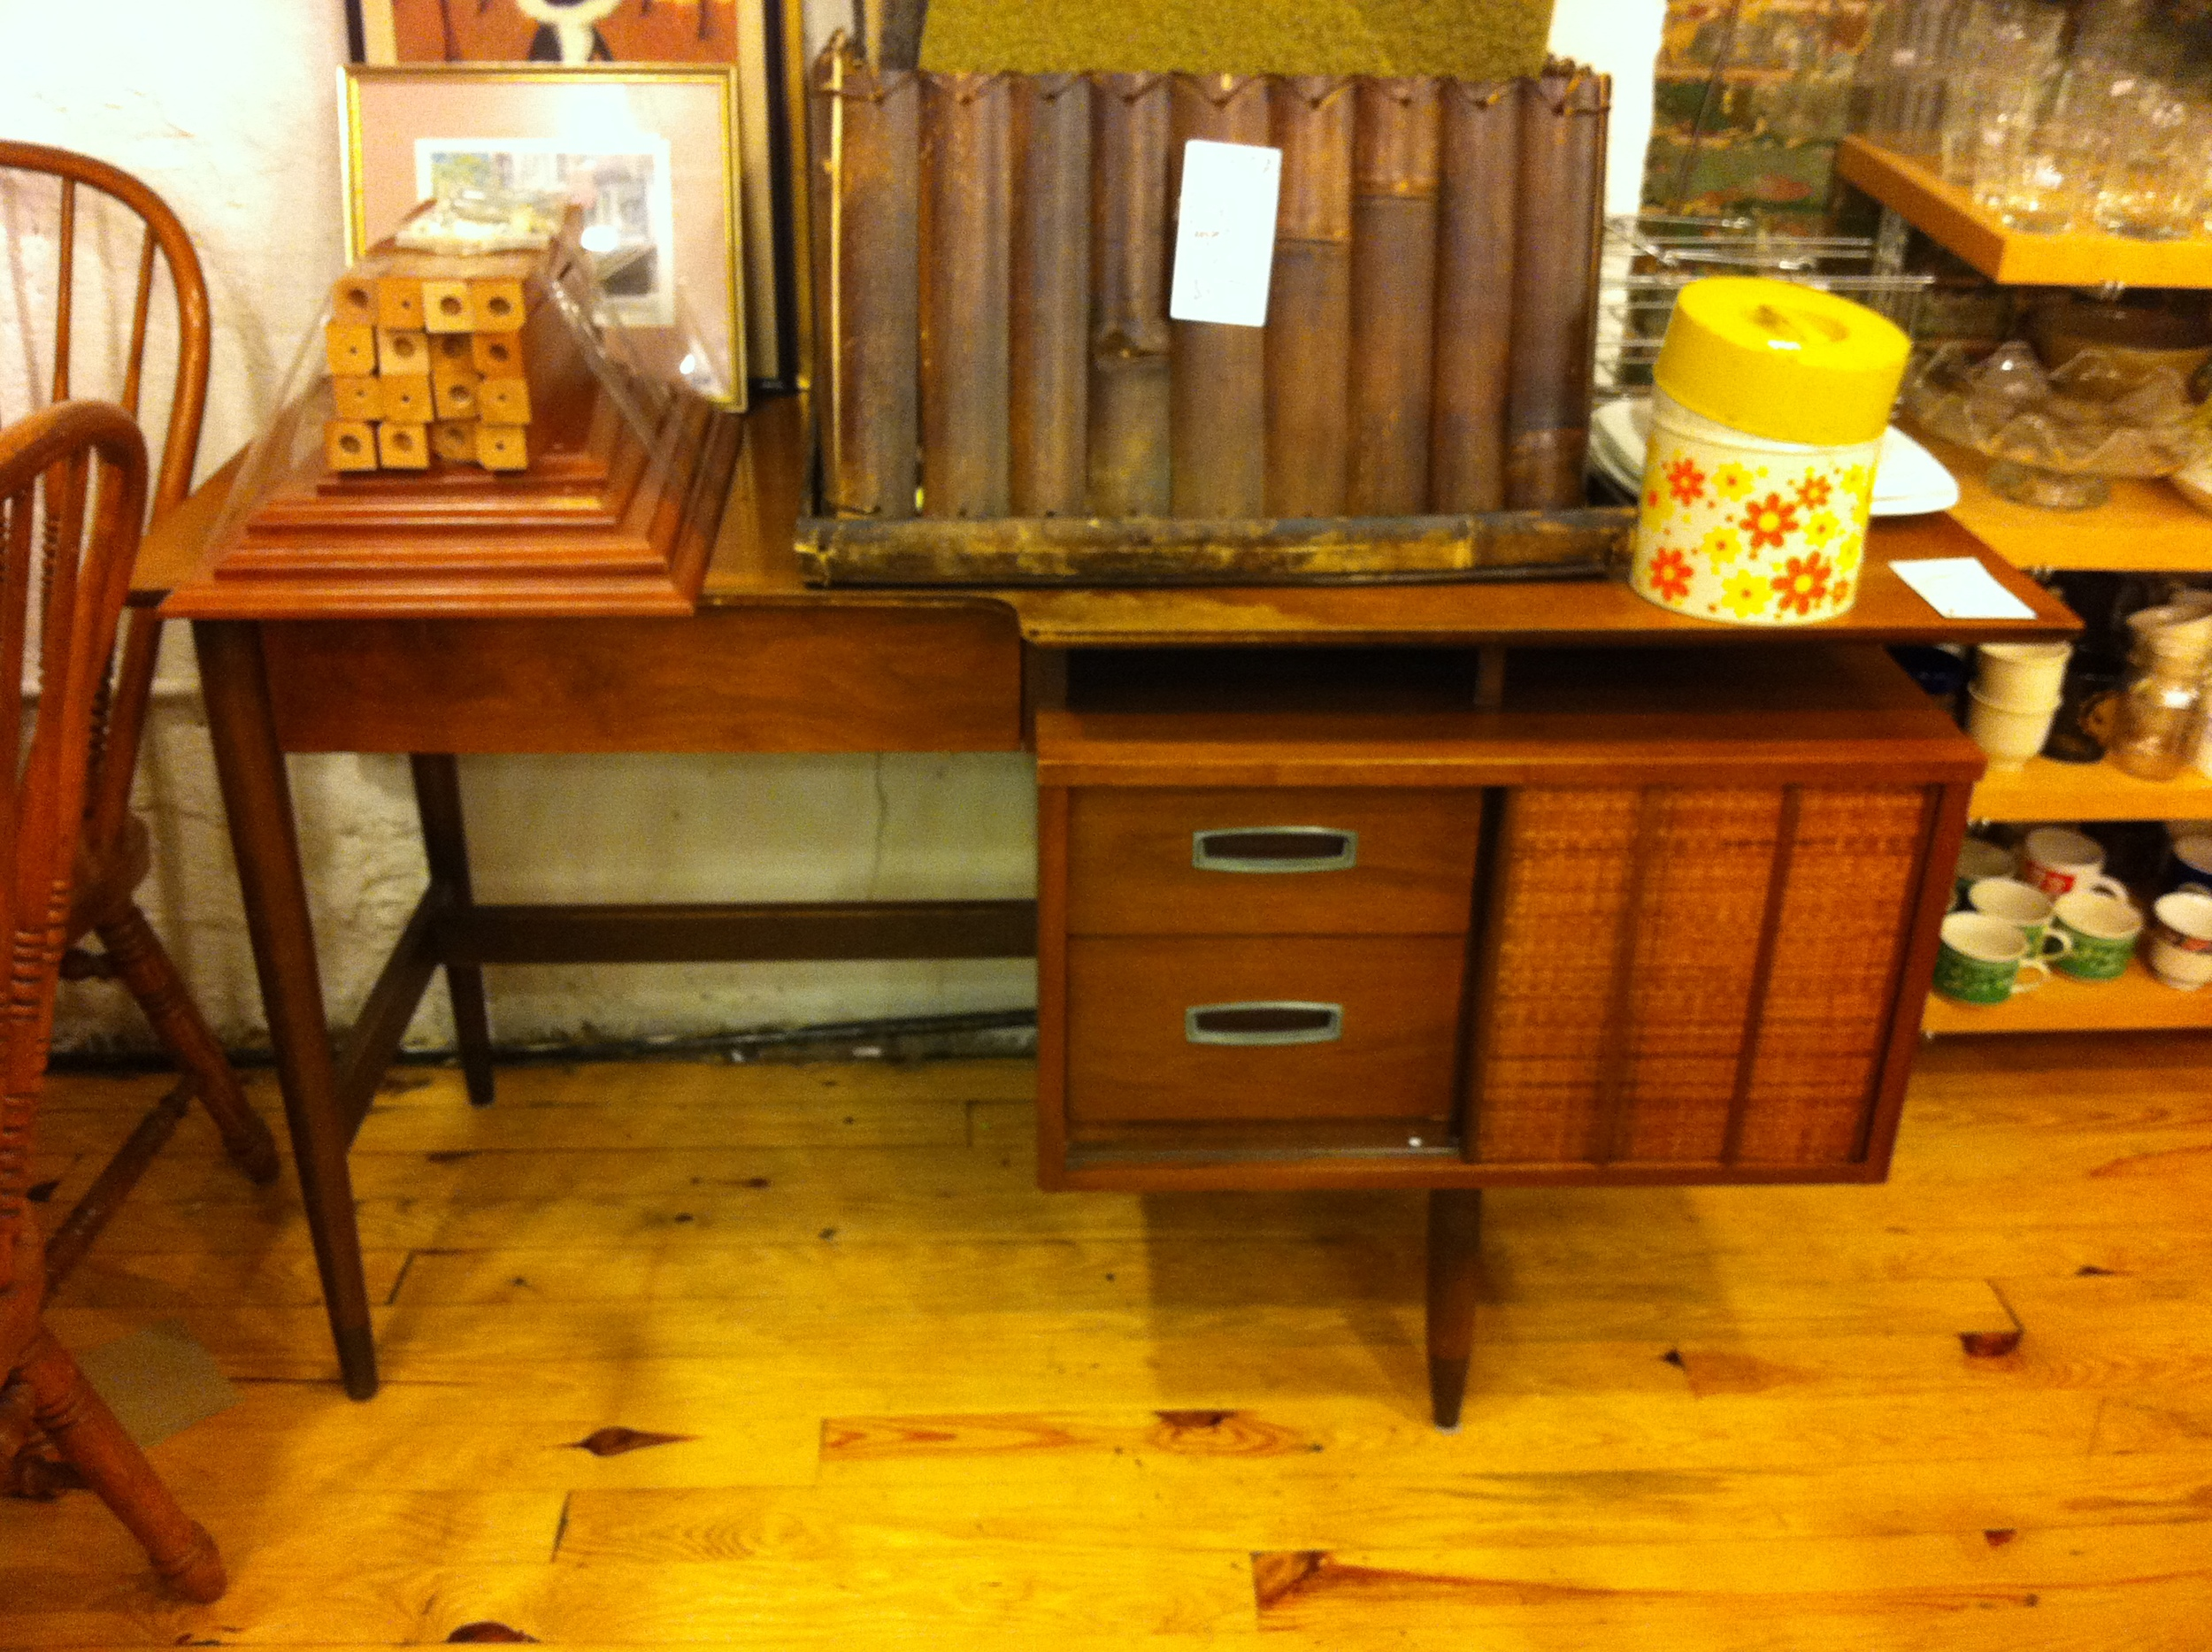 Pic of a mid century desk in thrift store